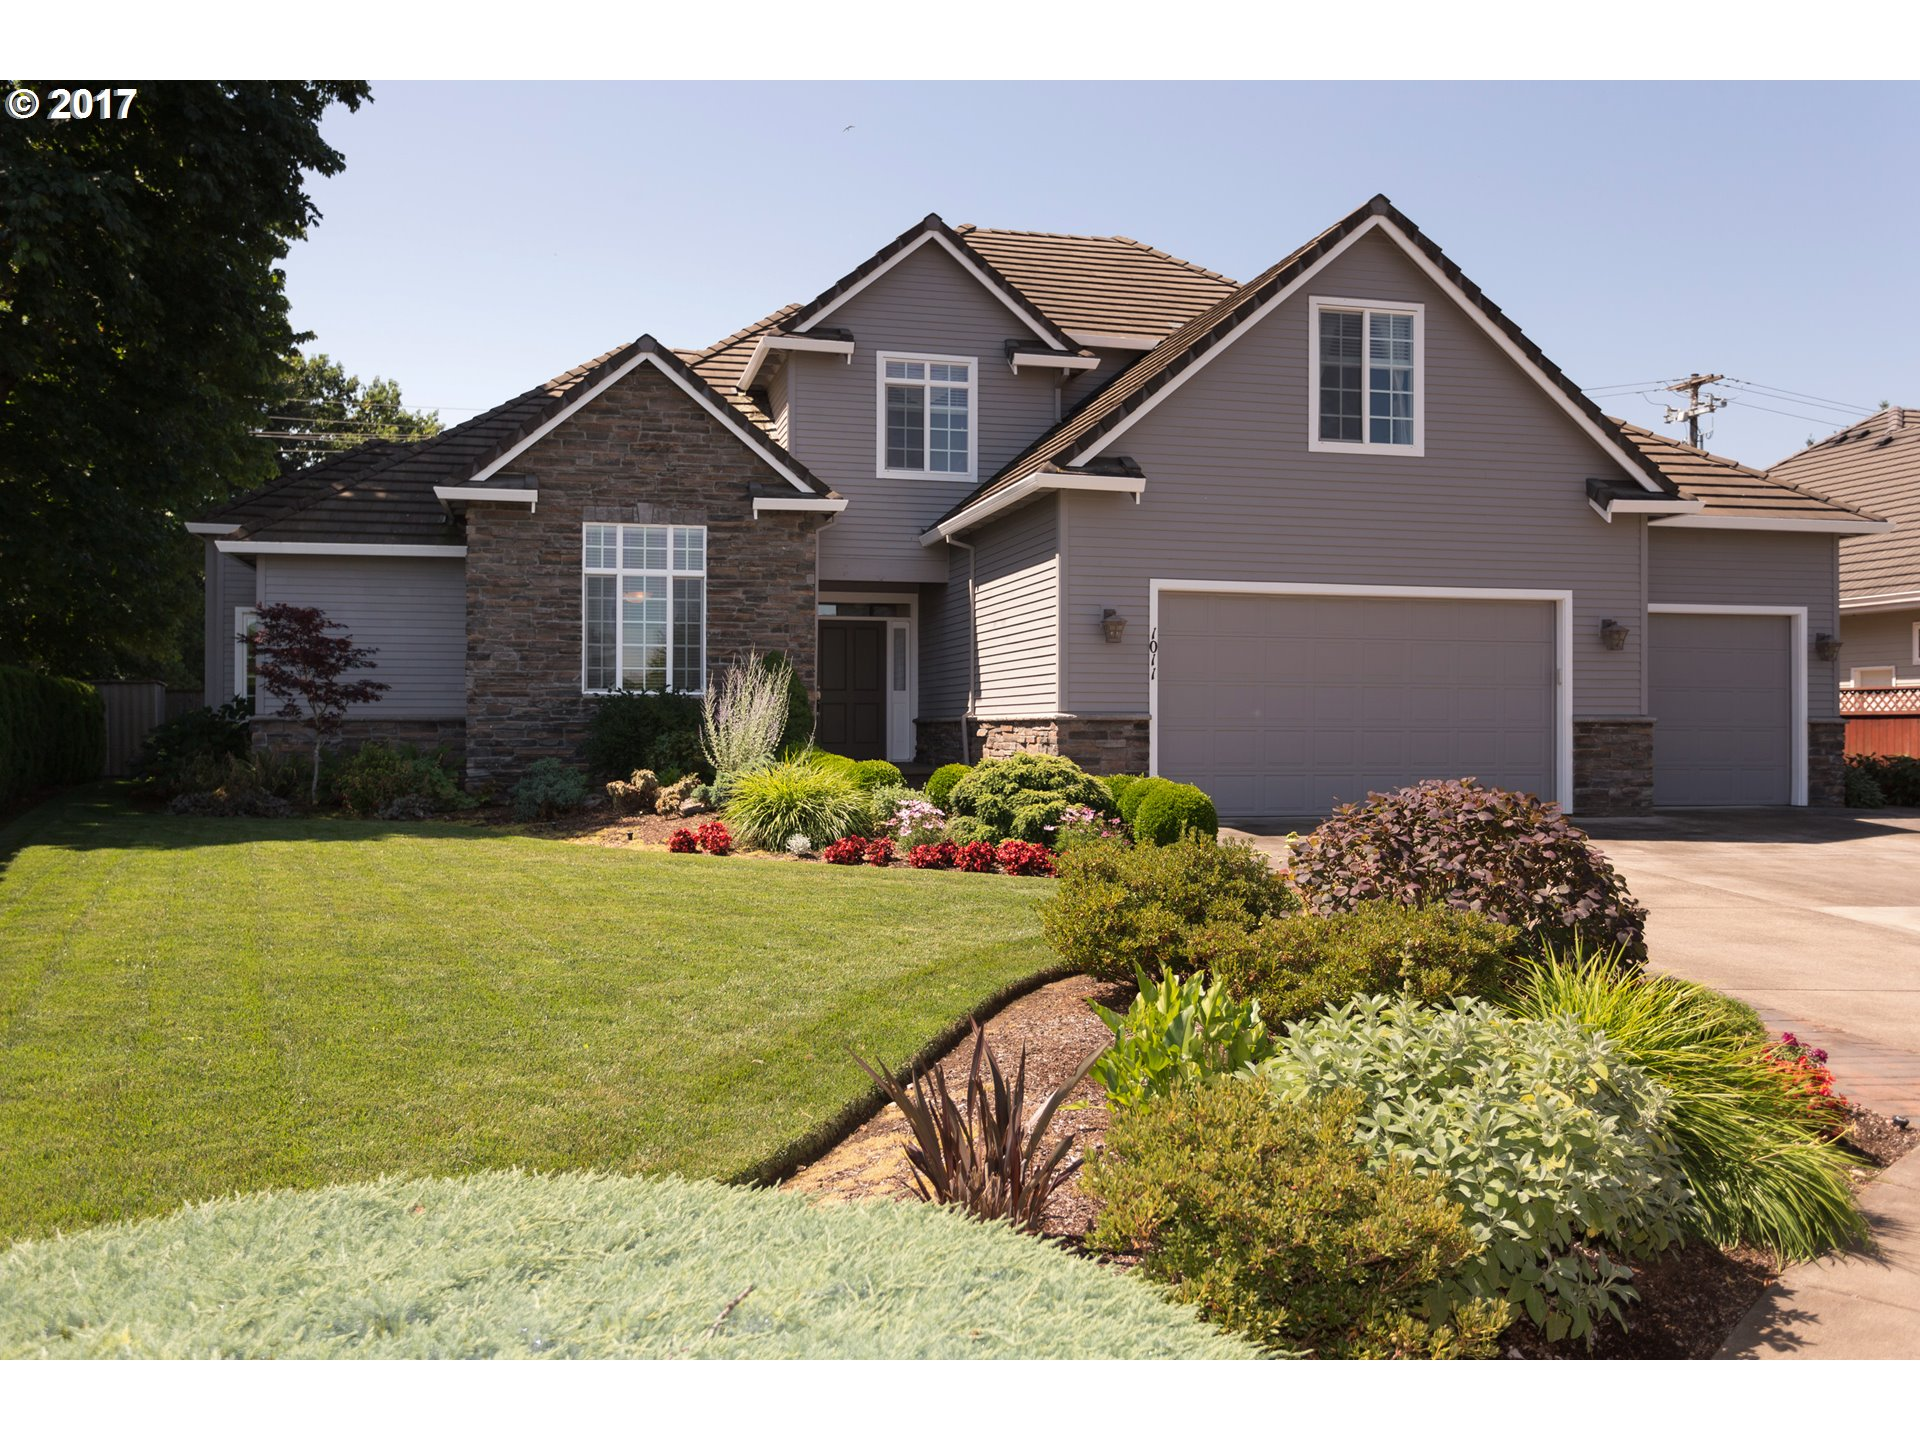 1011 NW 8TH WAY, Canby, OR 97013